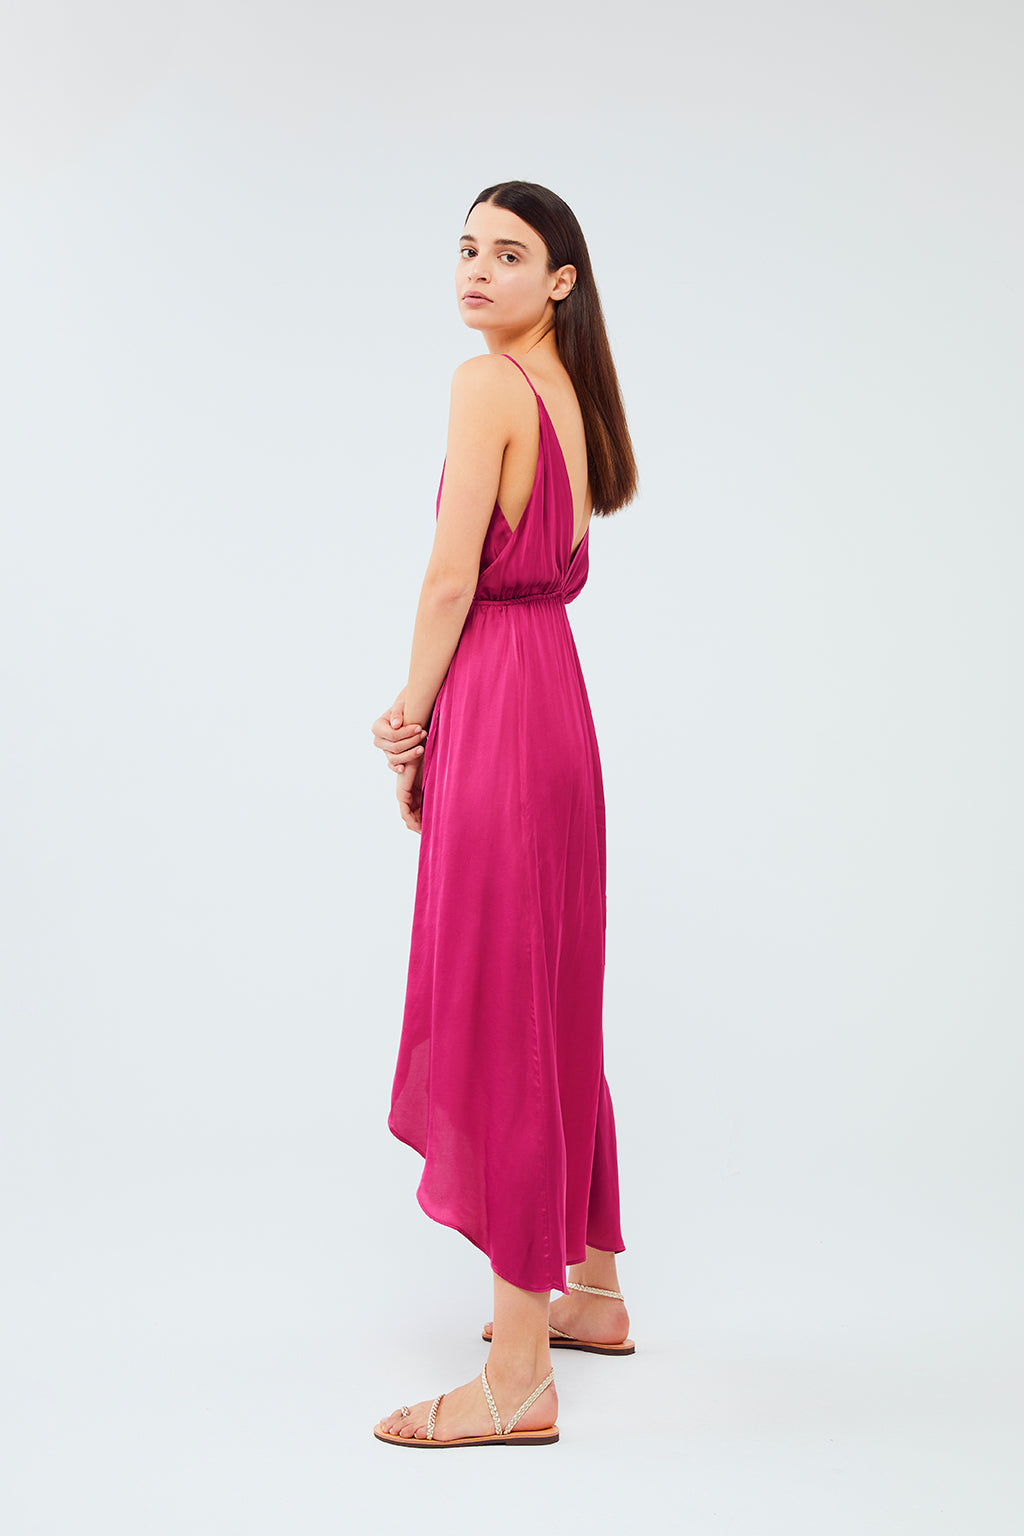 Wildwood - Orchid Dress | Magenda